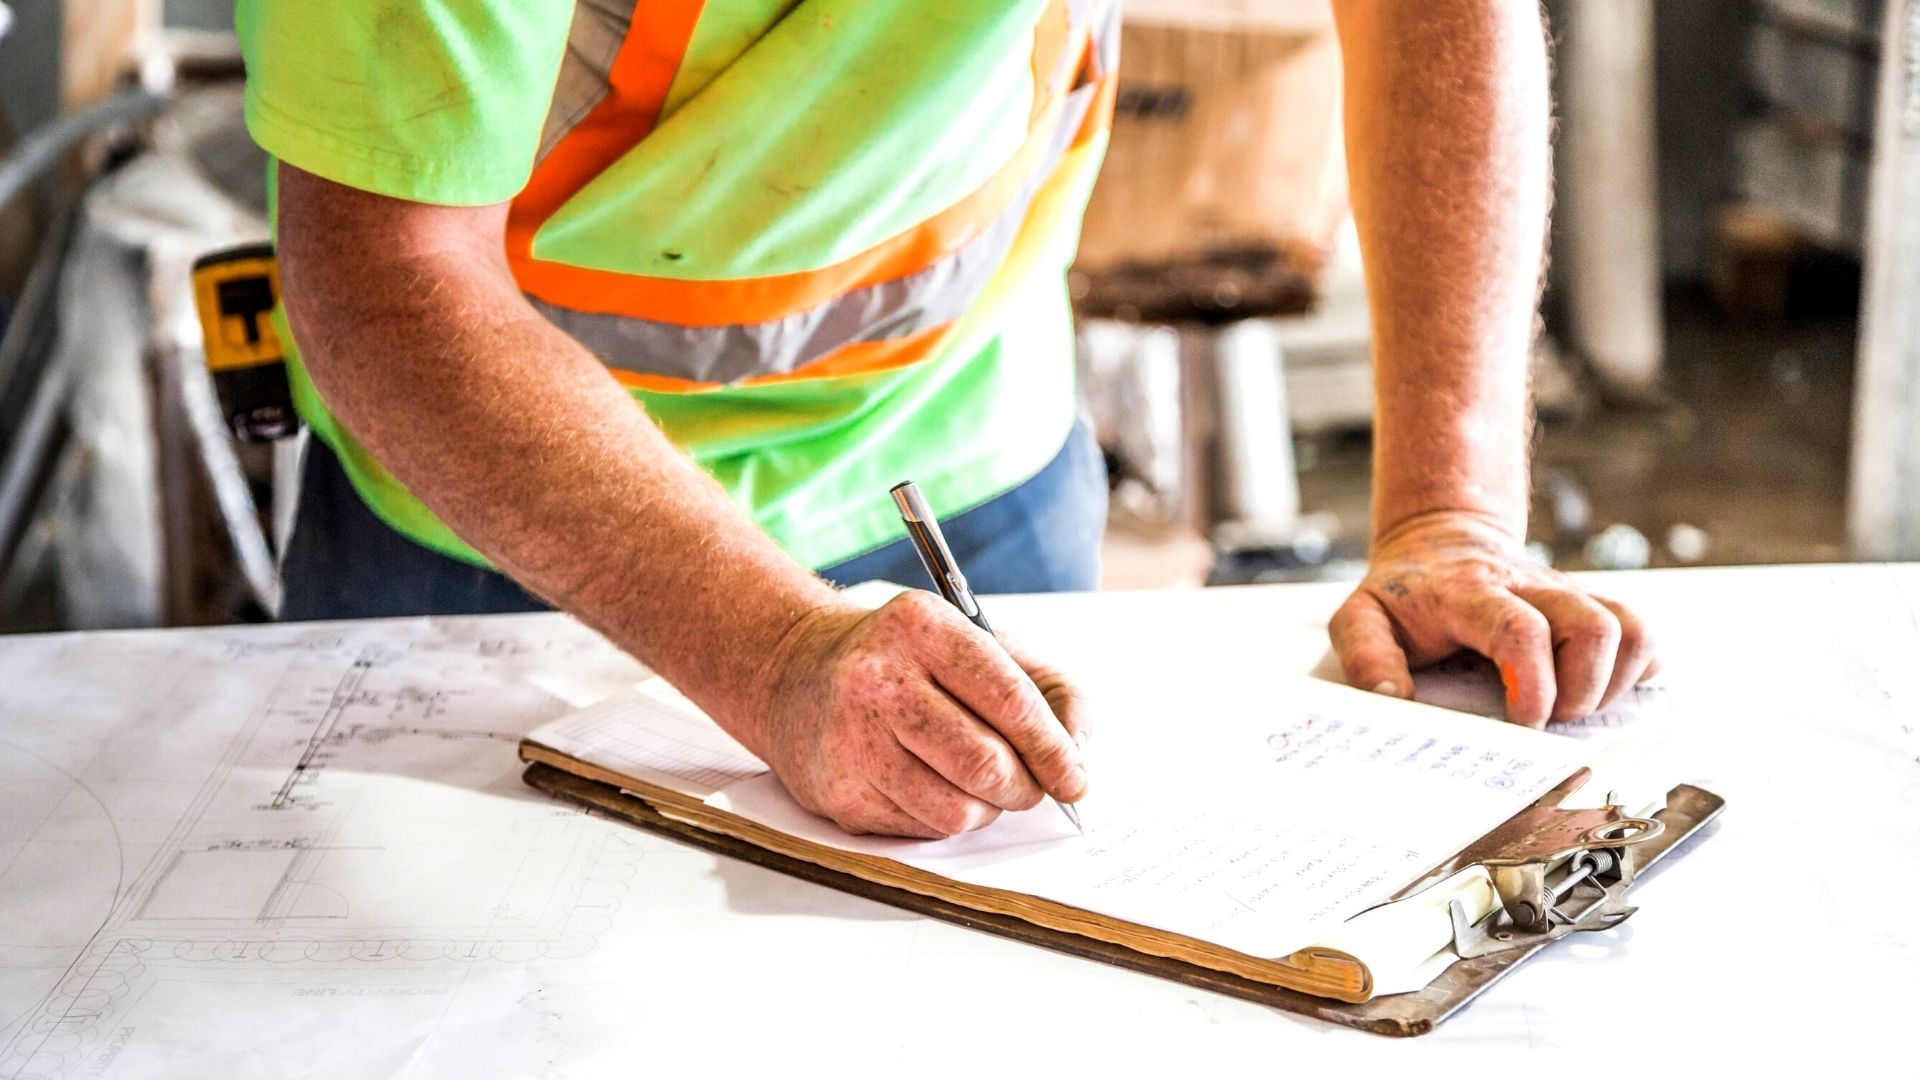 Construction worker writing on a clipboard that is on a white table.